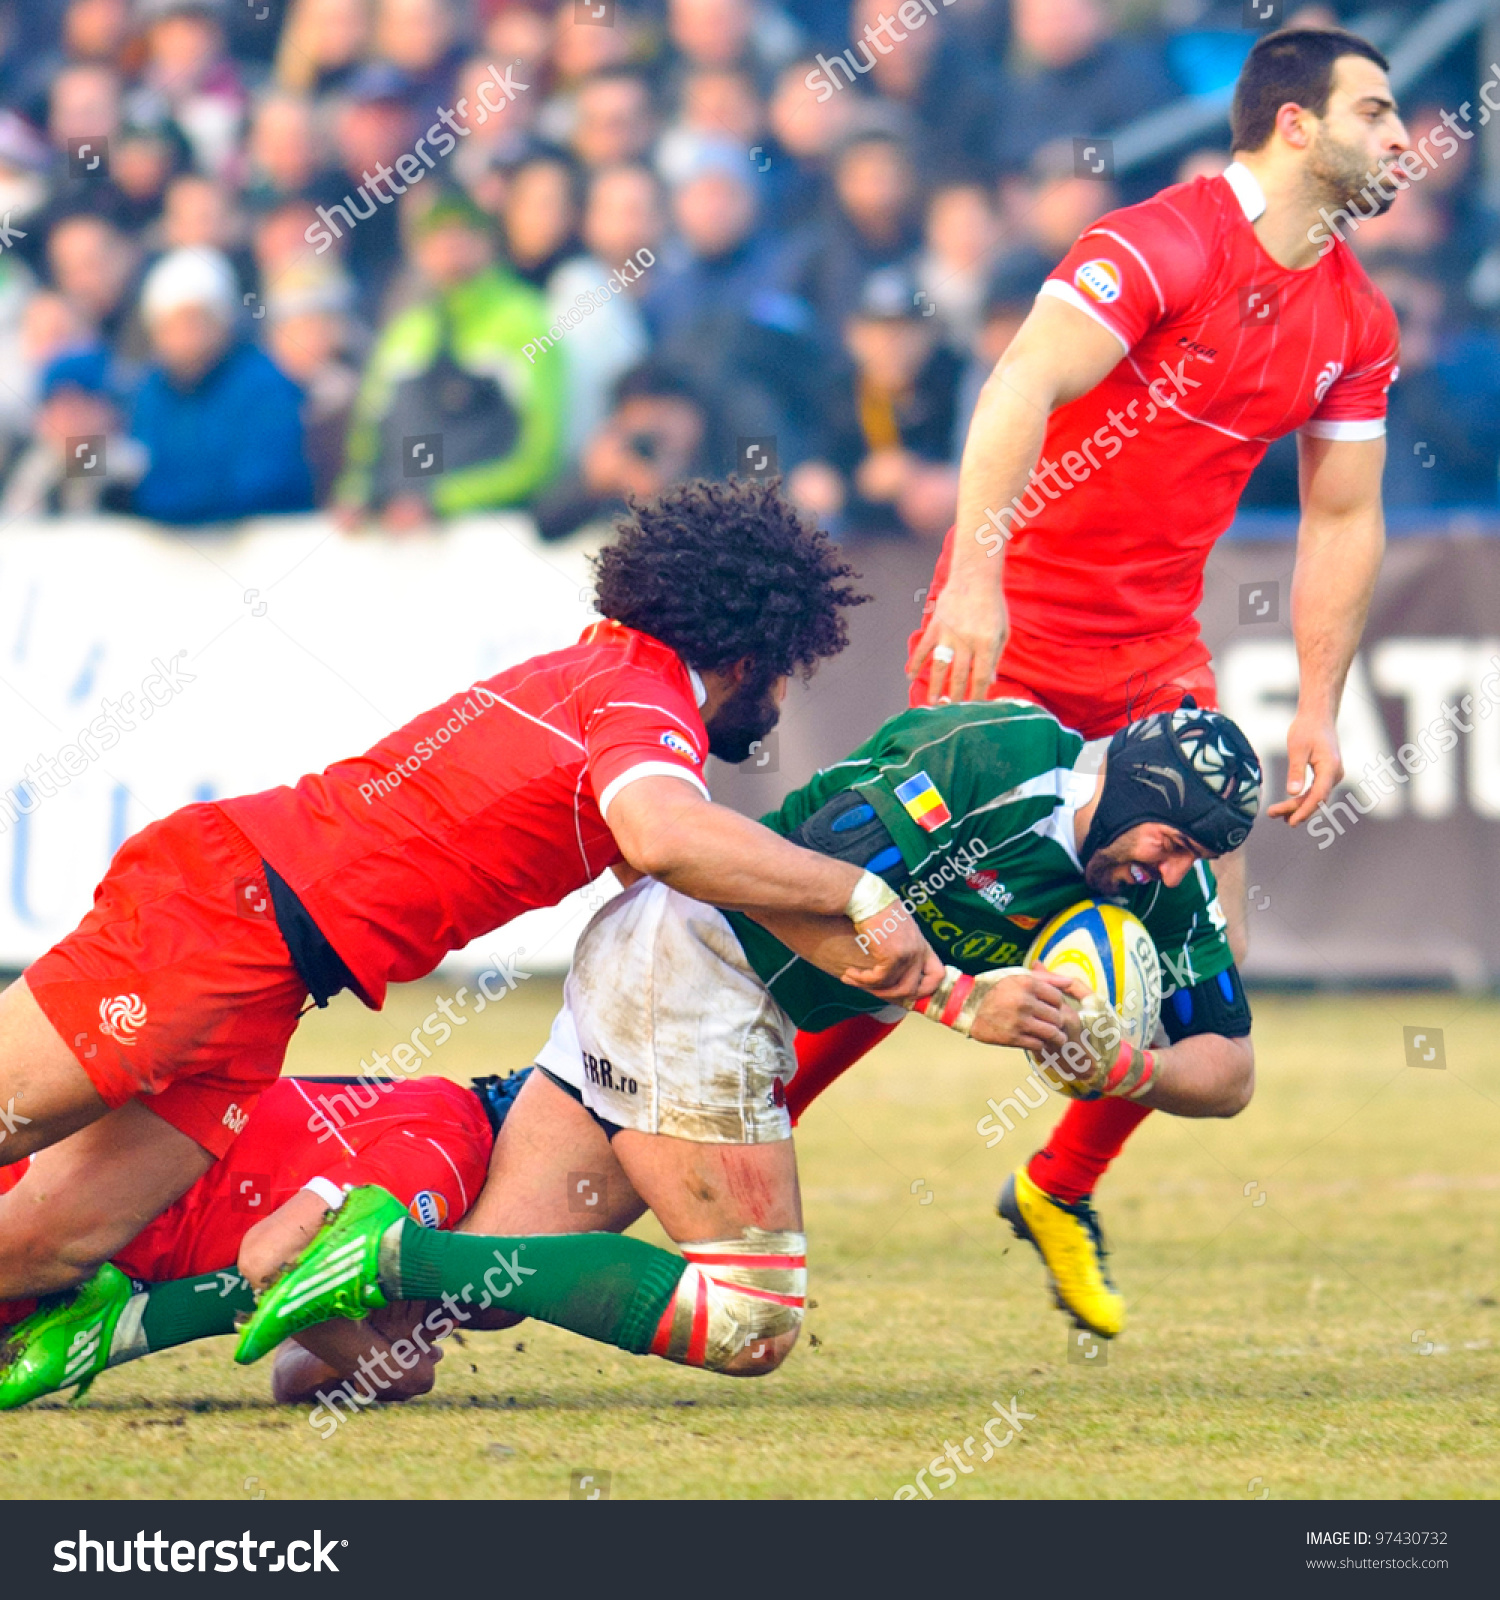 Green Rugby Player: March 10: Unidentified Rugby Players